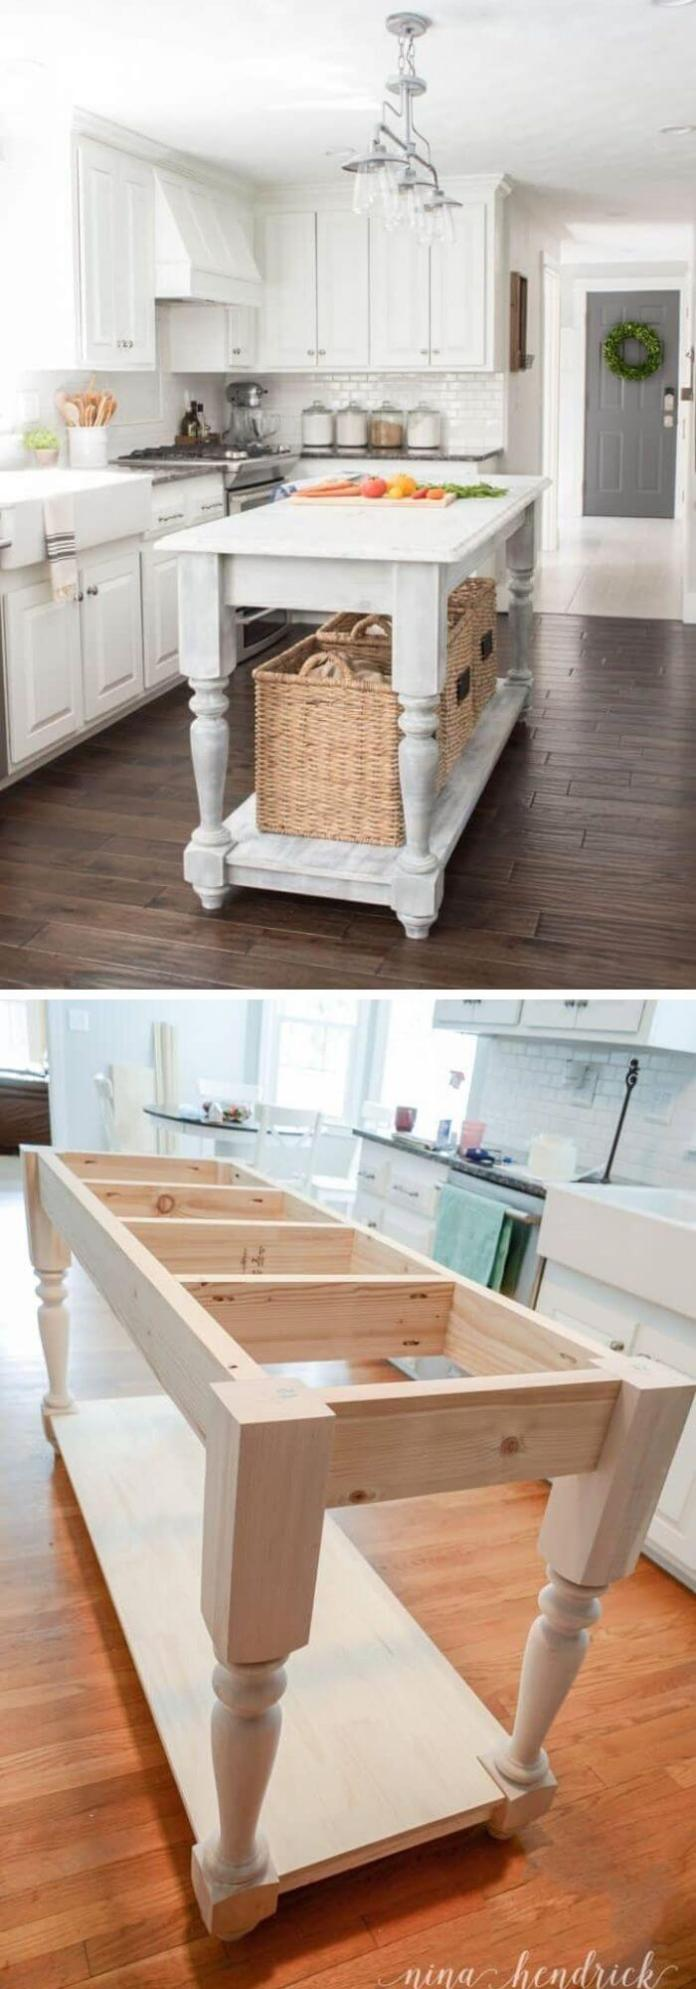 20 Rustic Diy Kitchen Island Ideas Designs With Instructions For 2020